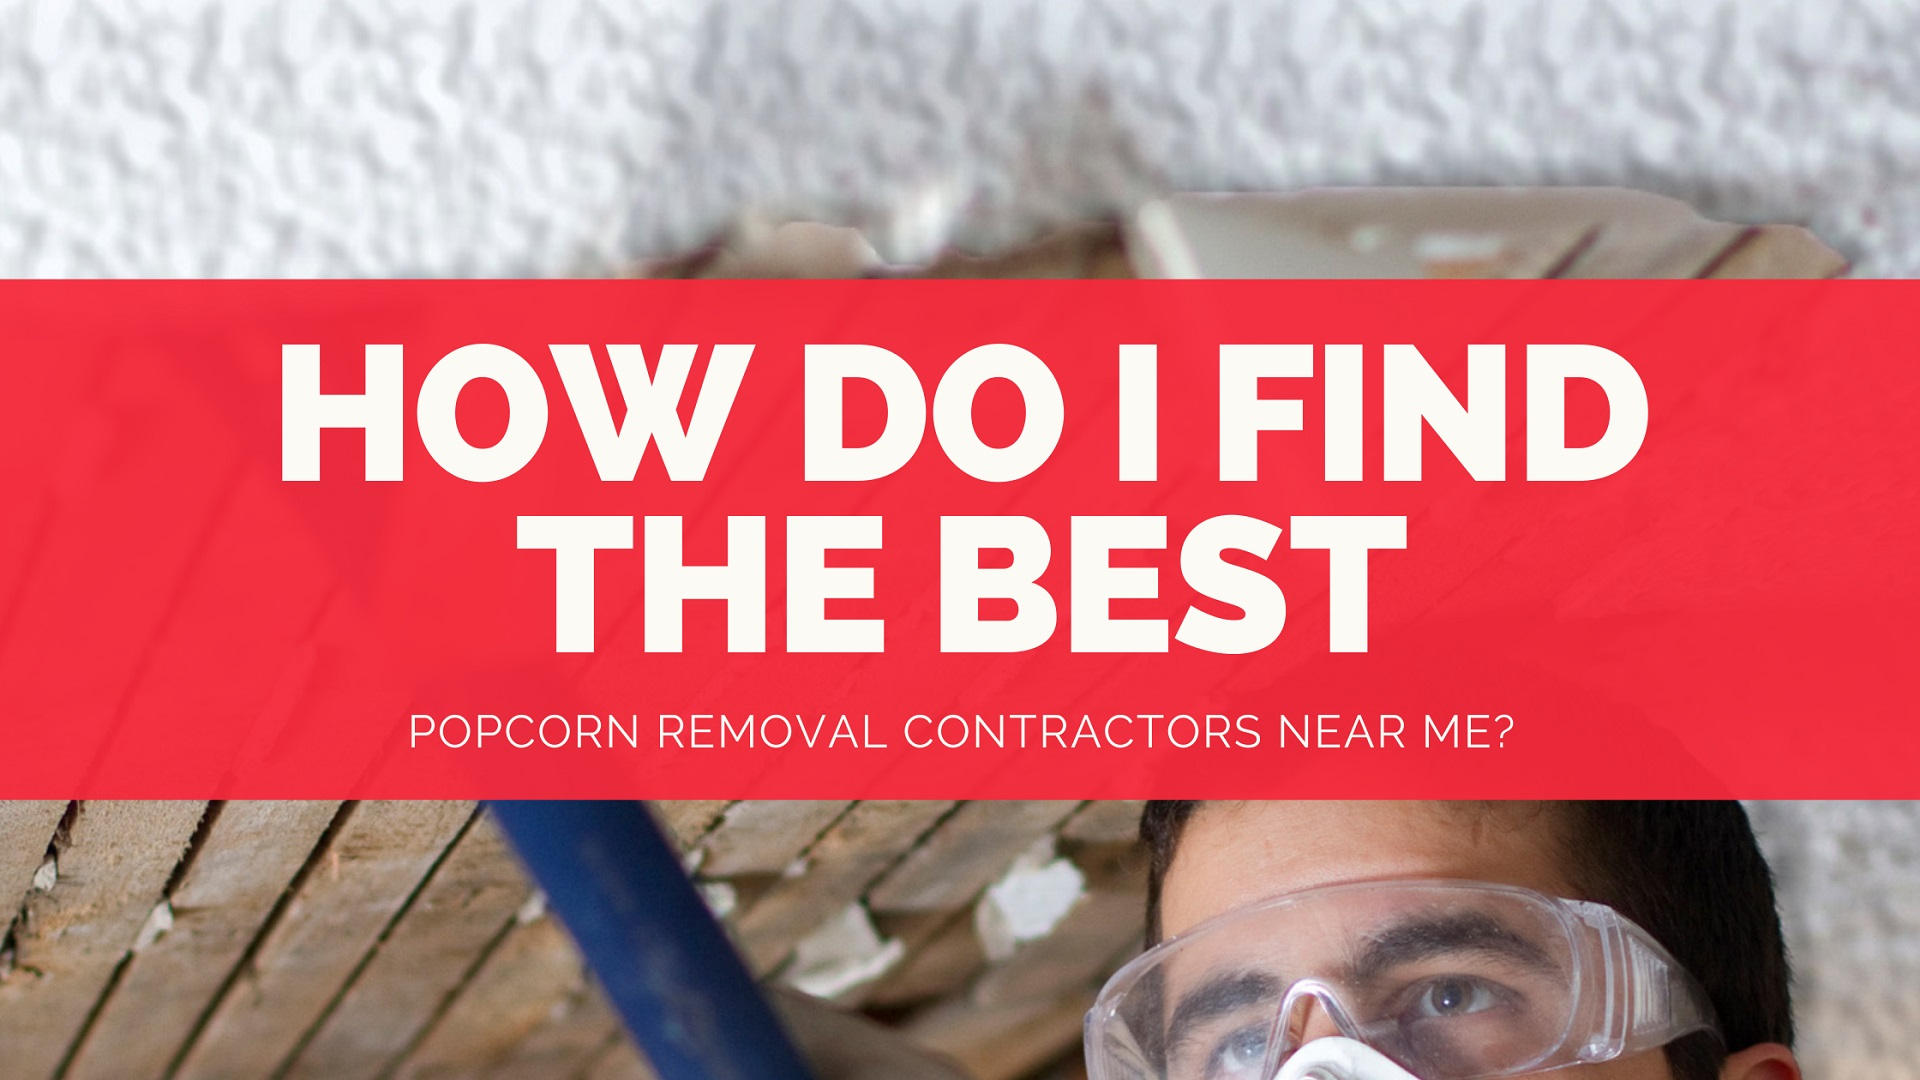 How do I find the best popcorn removal contractors near me